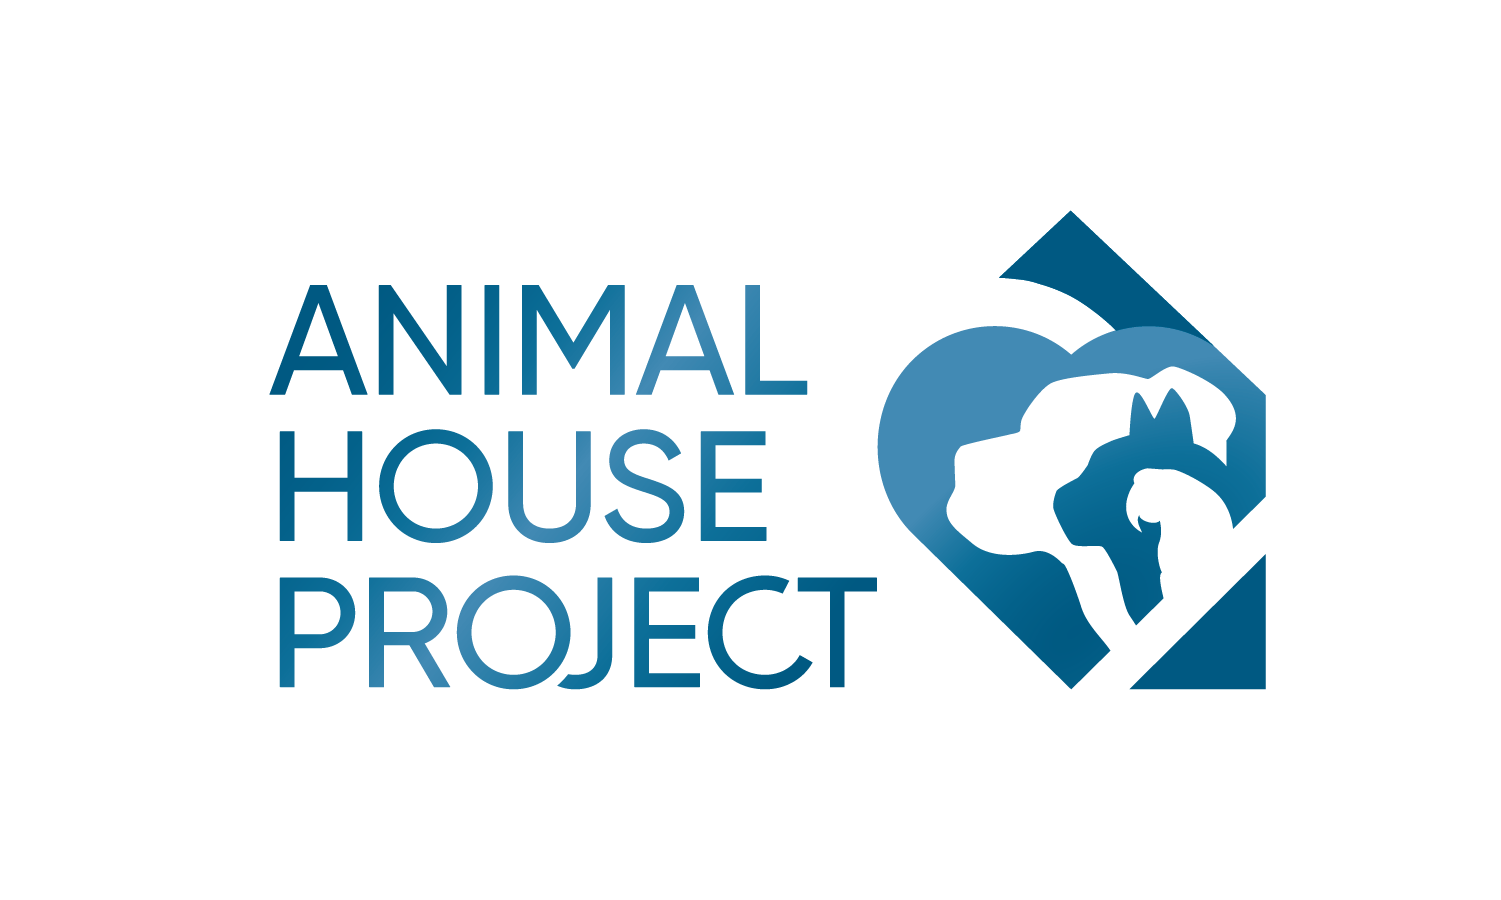 Animal House Project Is A 501 C 3 Charitable Organization On A